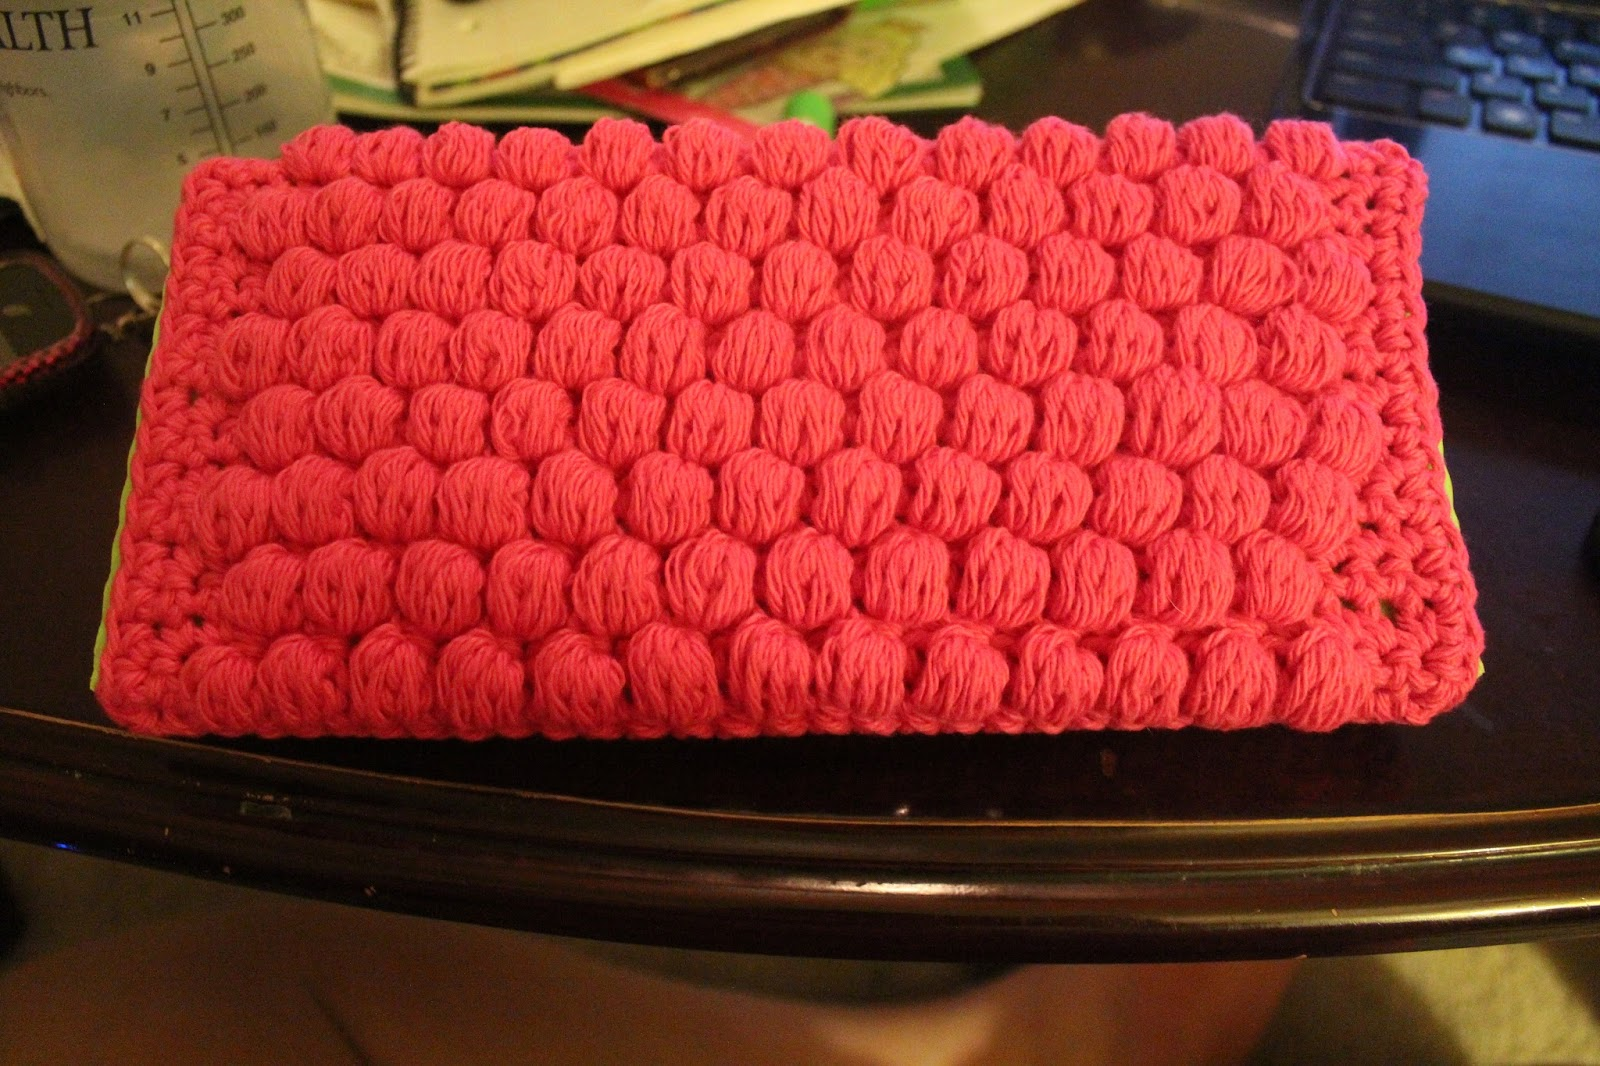 Stormfly Crafts Crochet Washable Swiffer Sweeper Pad